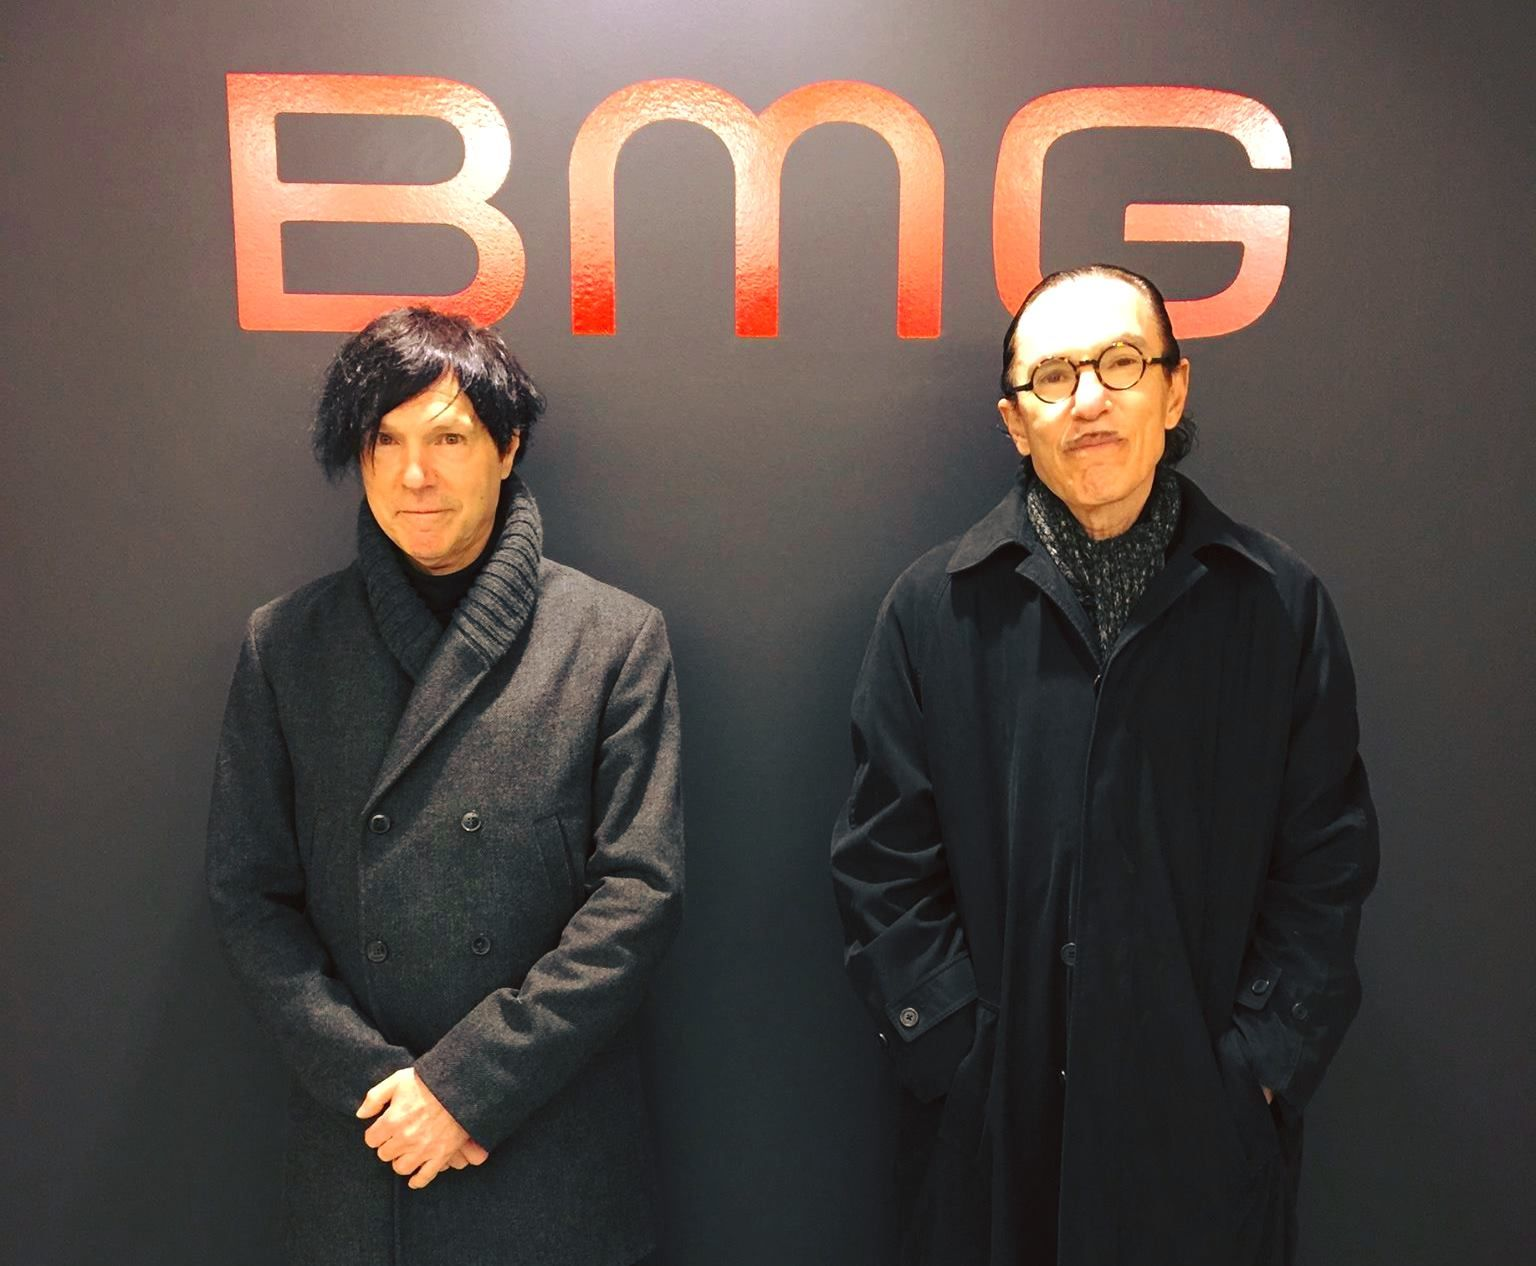 Russell And Ron At Bmg Uk Feb 2017 Sparks Band